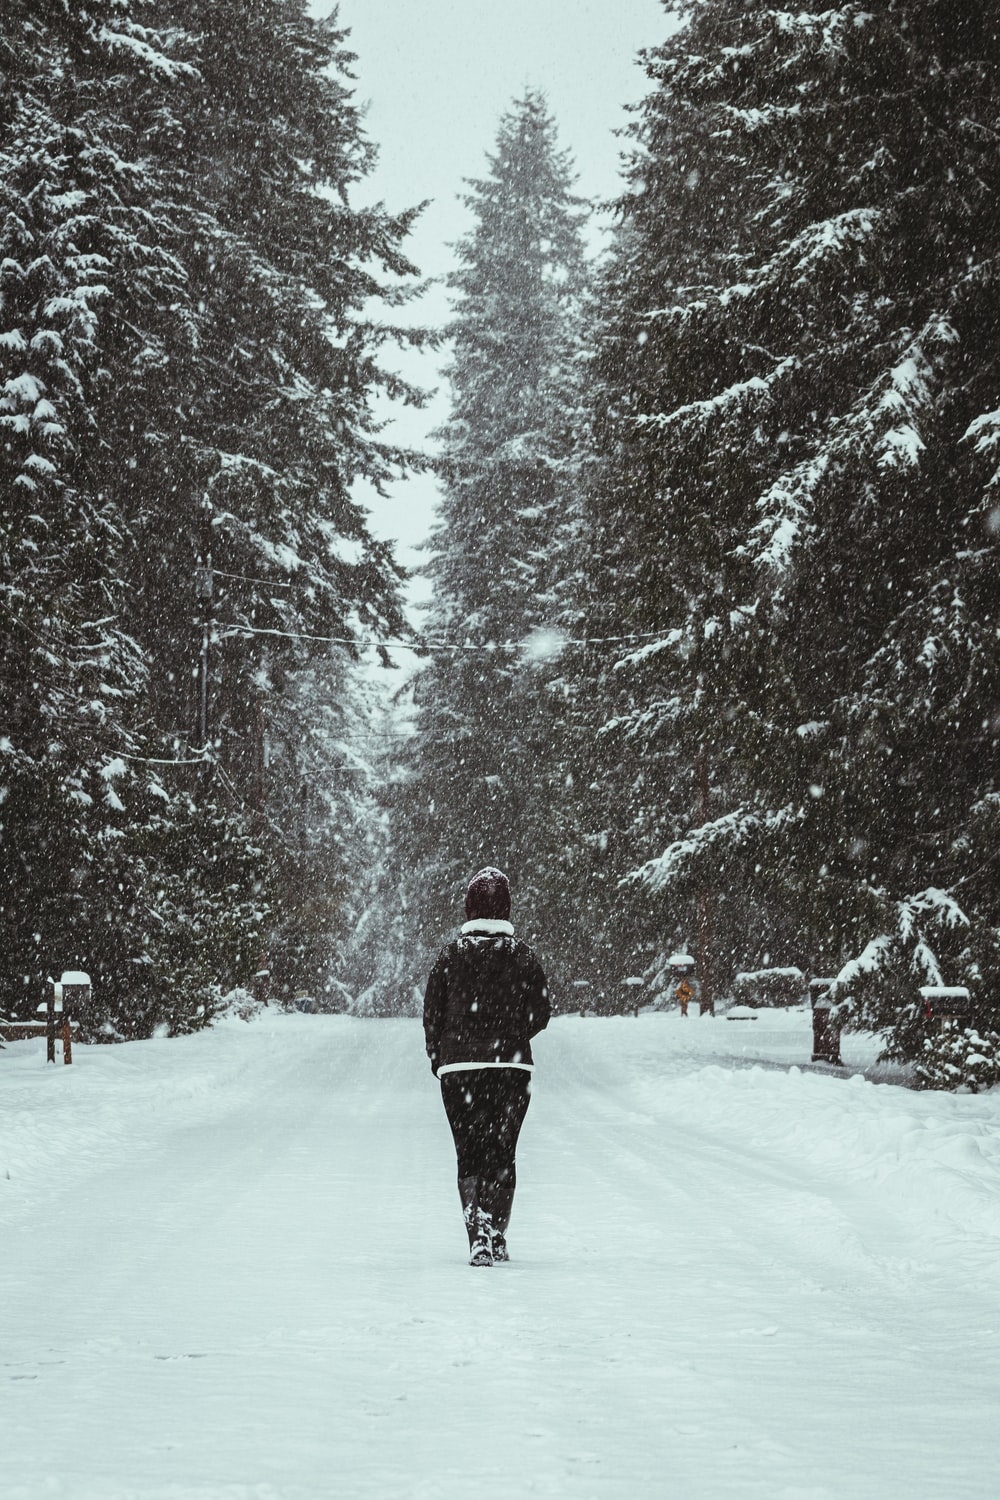 person in black jacket walking on snow covered ground near trees during daytime